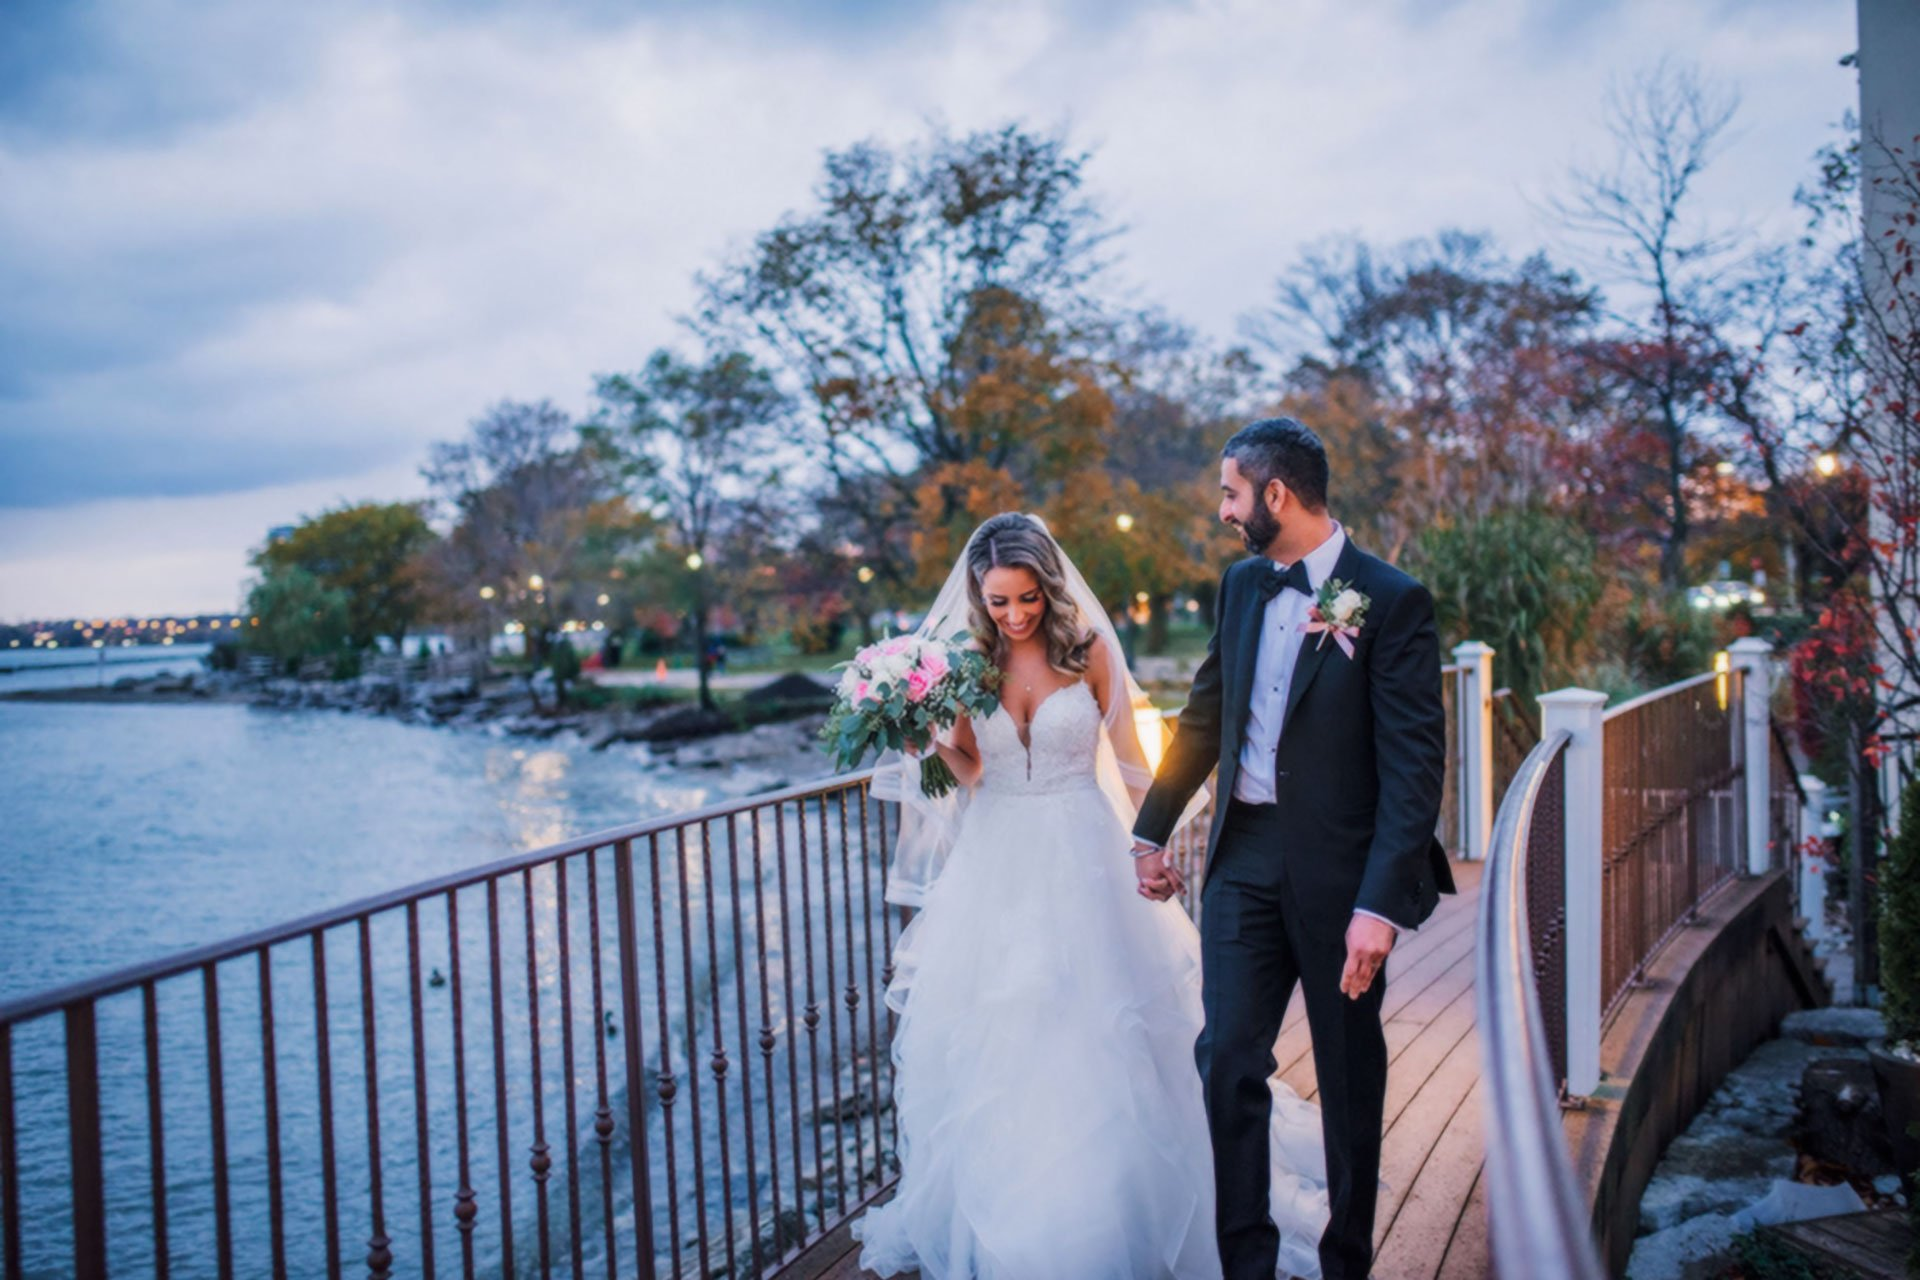 Toronto Wedding Venues by the Water: Palais Royale